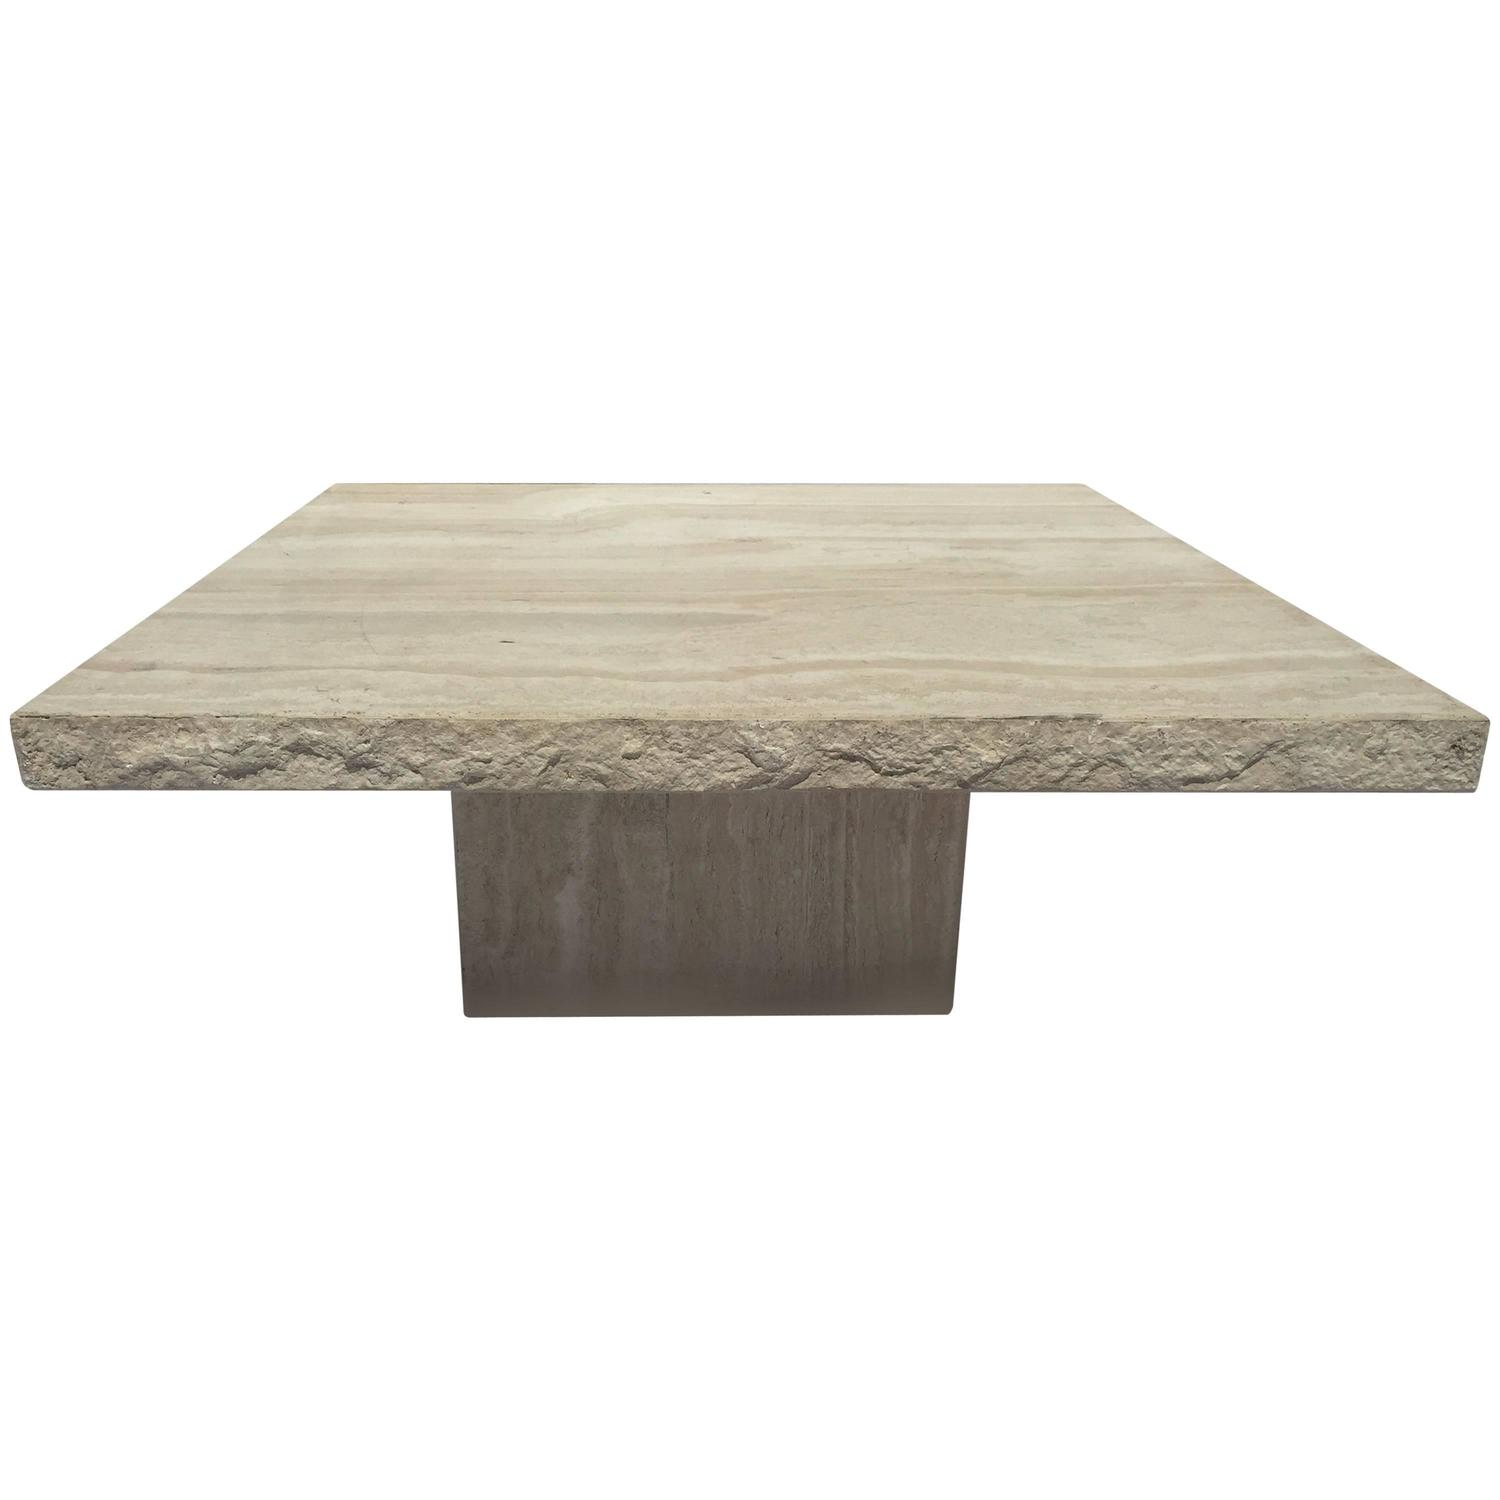 Monumentally Awesome Italian Travertine Marble Slab Coffee Table